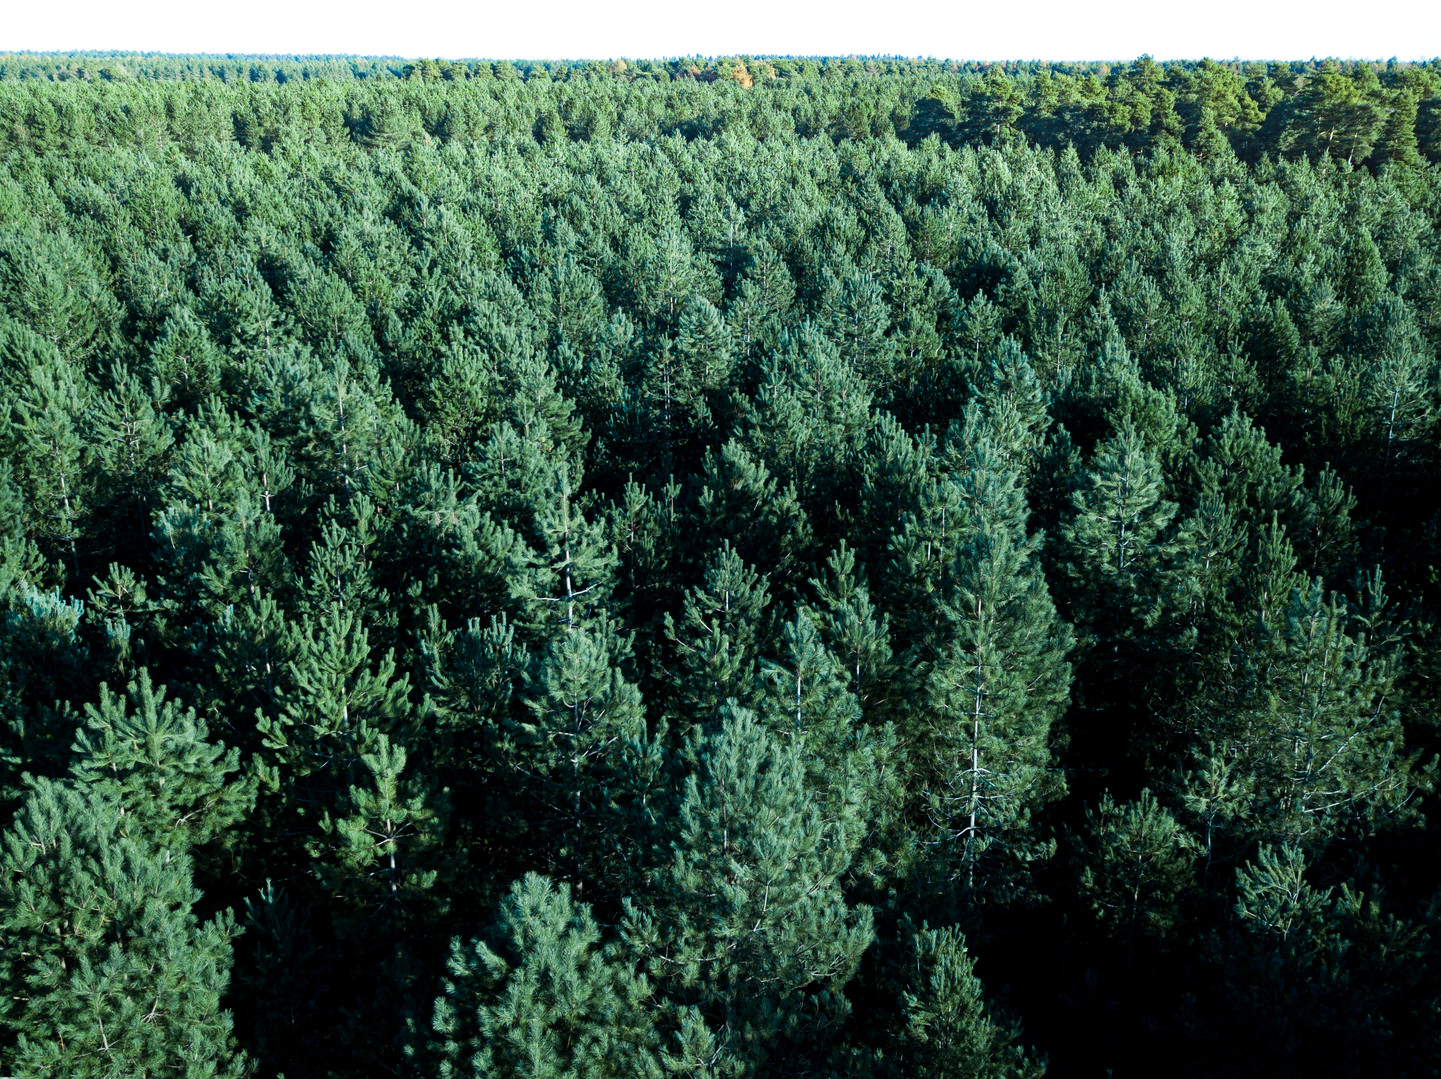 The CNMI is looking for 2 timber researchers to join the team!